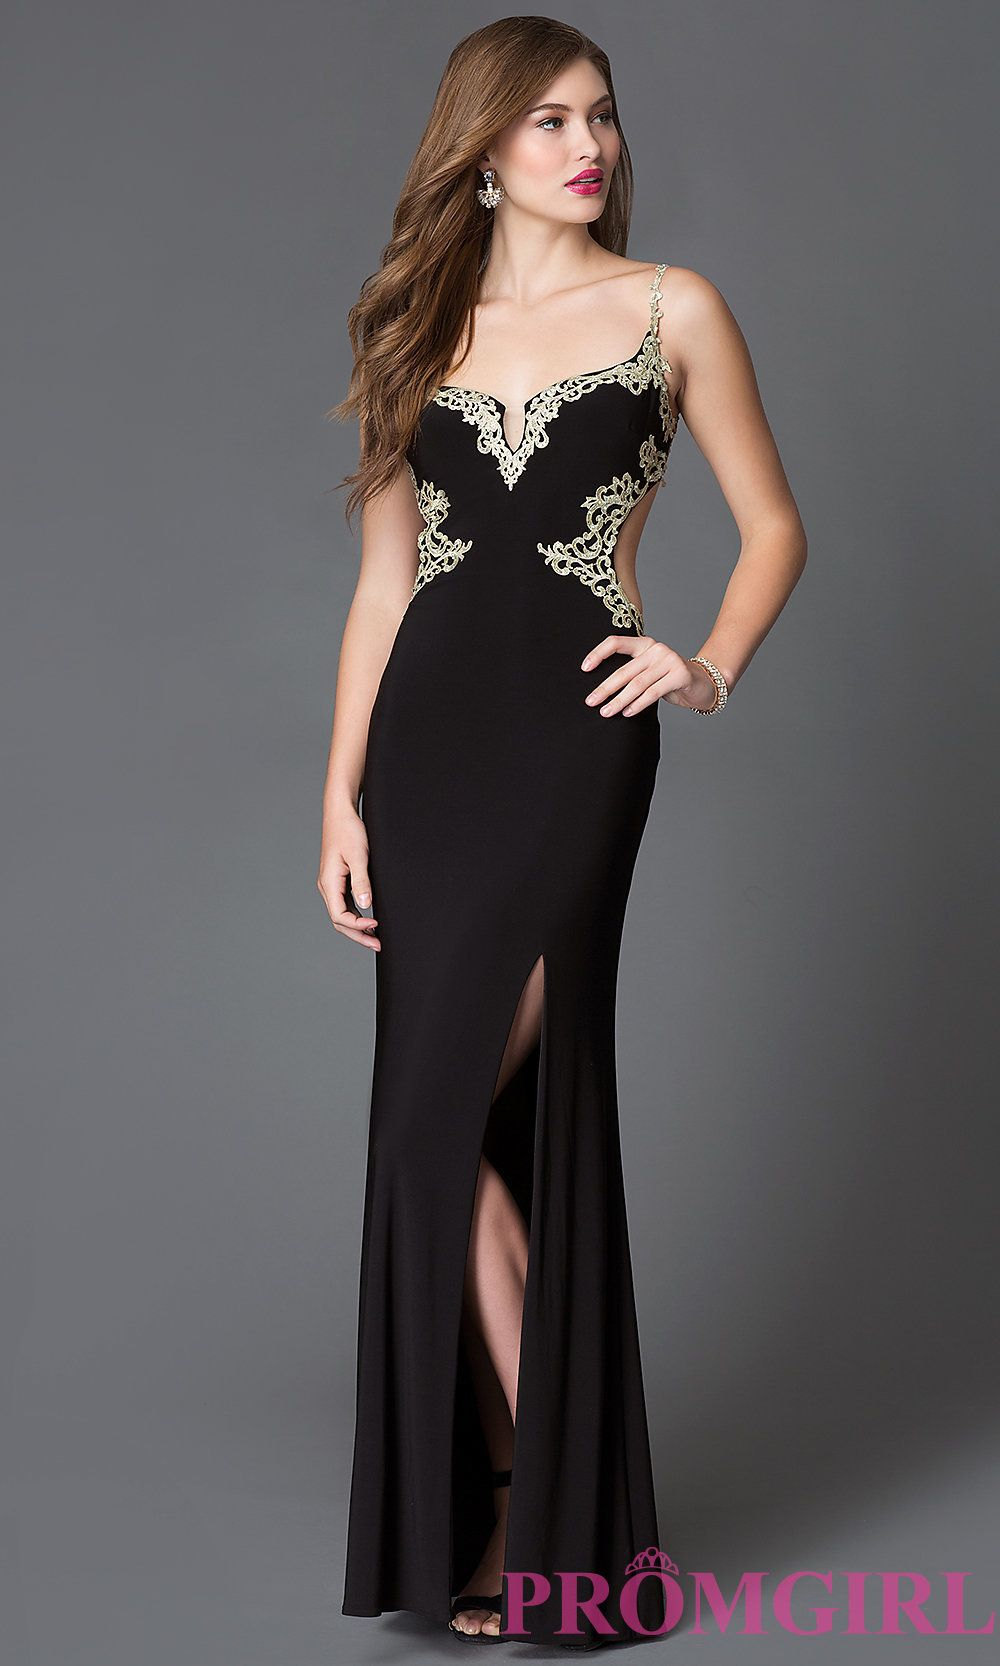 abf24ffc480 Image of long black sleeveless open back gold lace side slit dress Front  Image